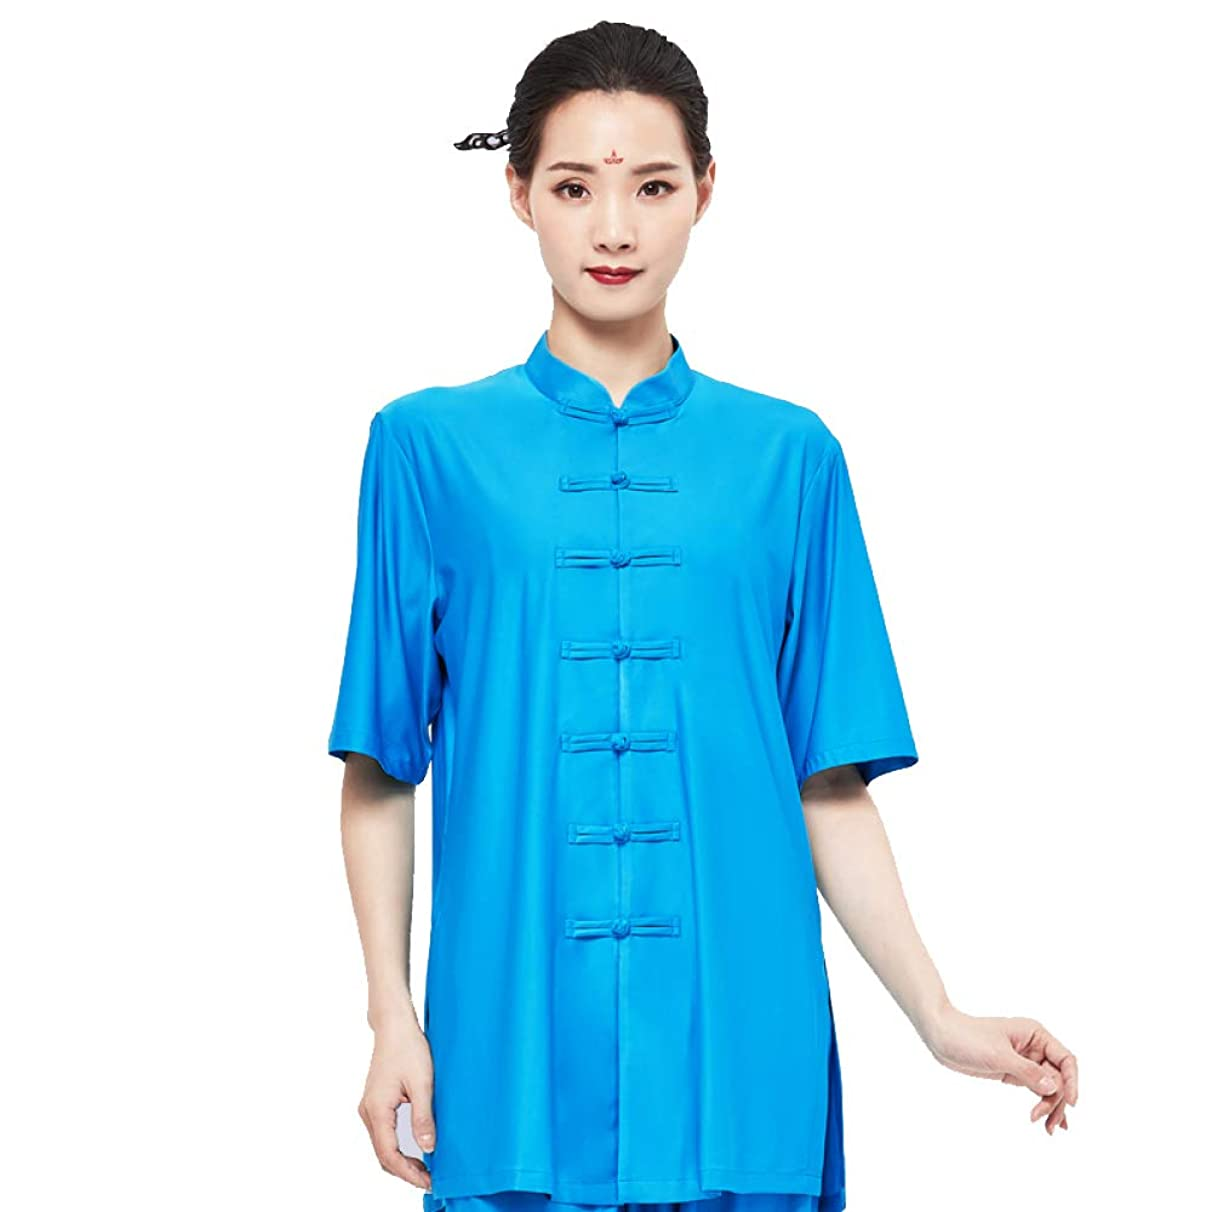 YXLONG Tai Chi Uniform Clothing Spring and Summer Milk Silk Short Sleeve Martial Arts Show Men and Women (S-XXL)